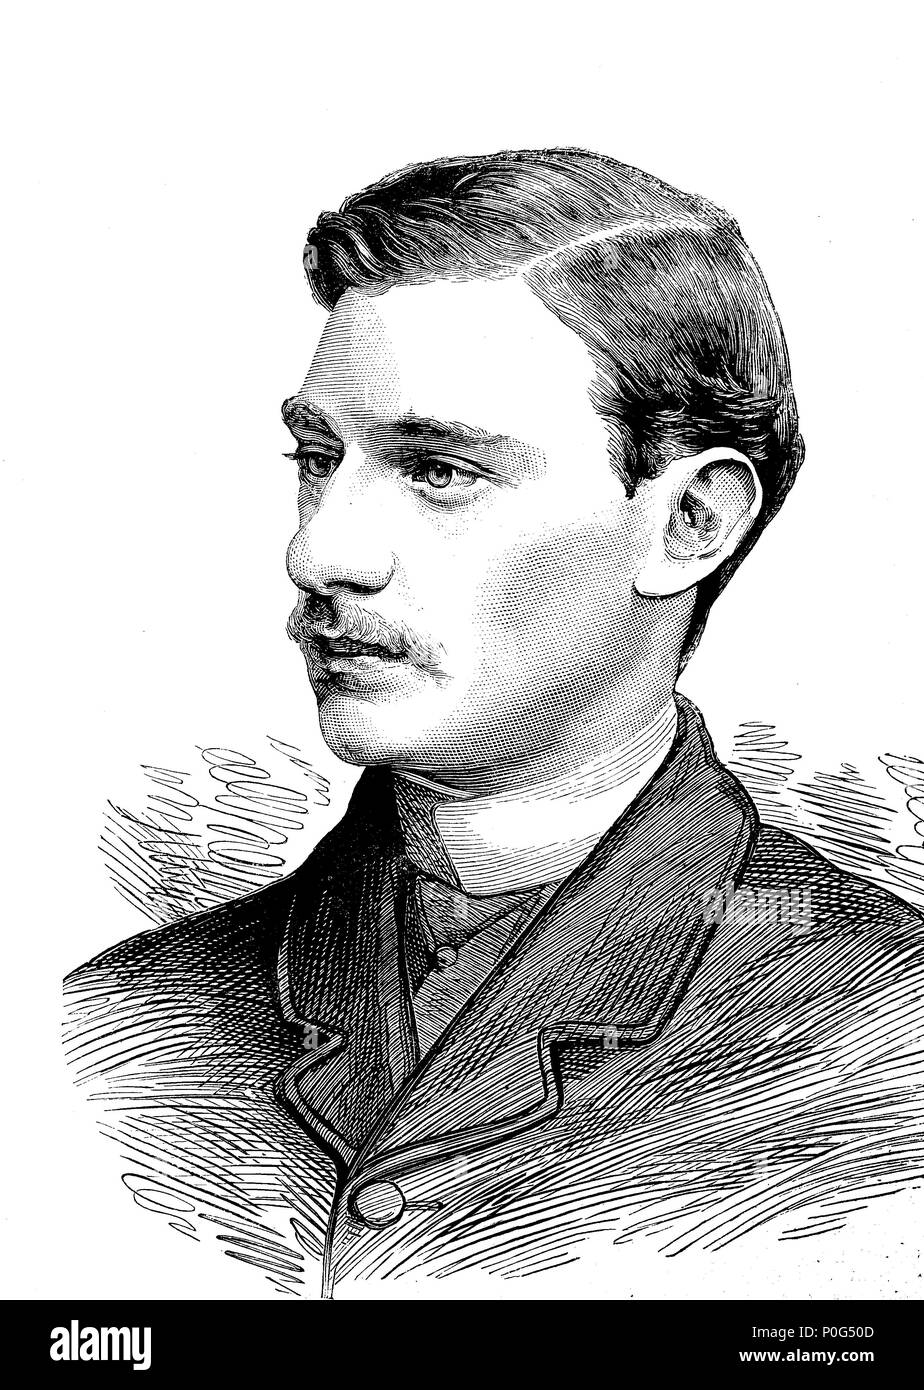 Charles Alfred Worsley Pelham, 4th Earl of Yarborough KG PC (11 June 1859 - 12 July 1936), styled Lord Worsley until 1875, was a British peer and politician, digital improved reproduction of an original print from the year 1881 - Stock Image